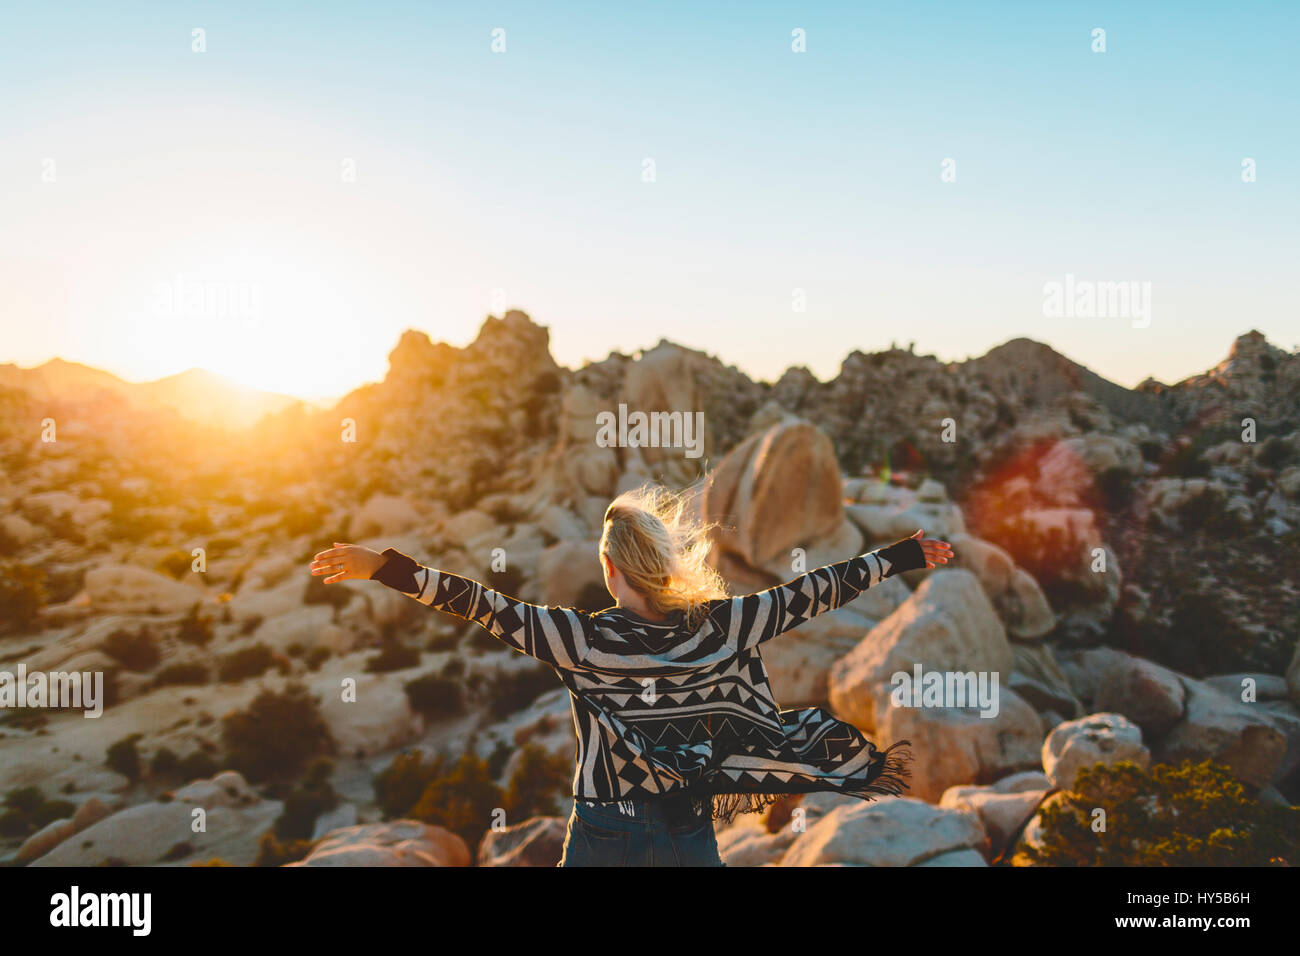 États-unis, Californie, femme d'armes à dispersion Joshua Tree National Park Photo Stock